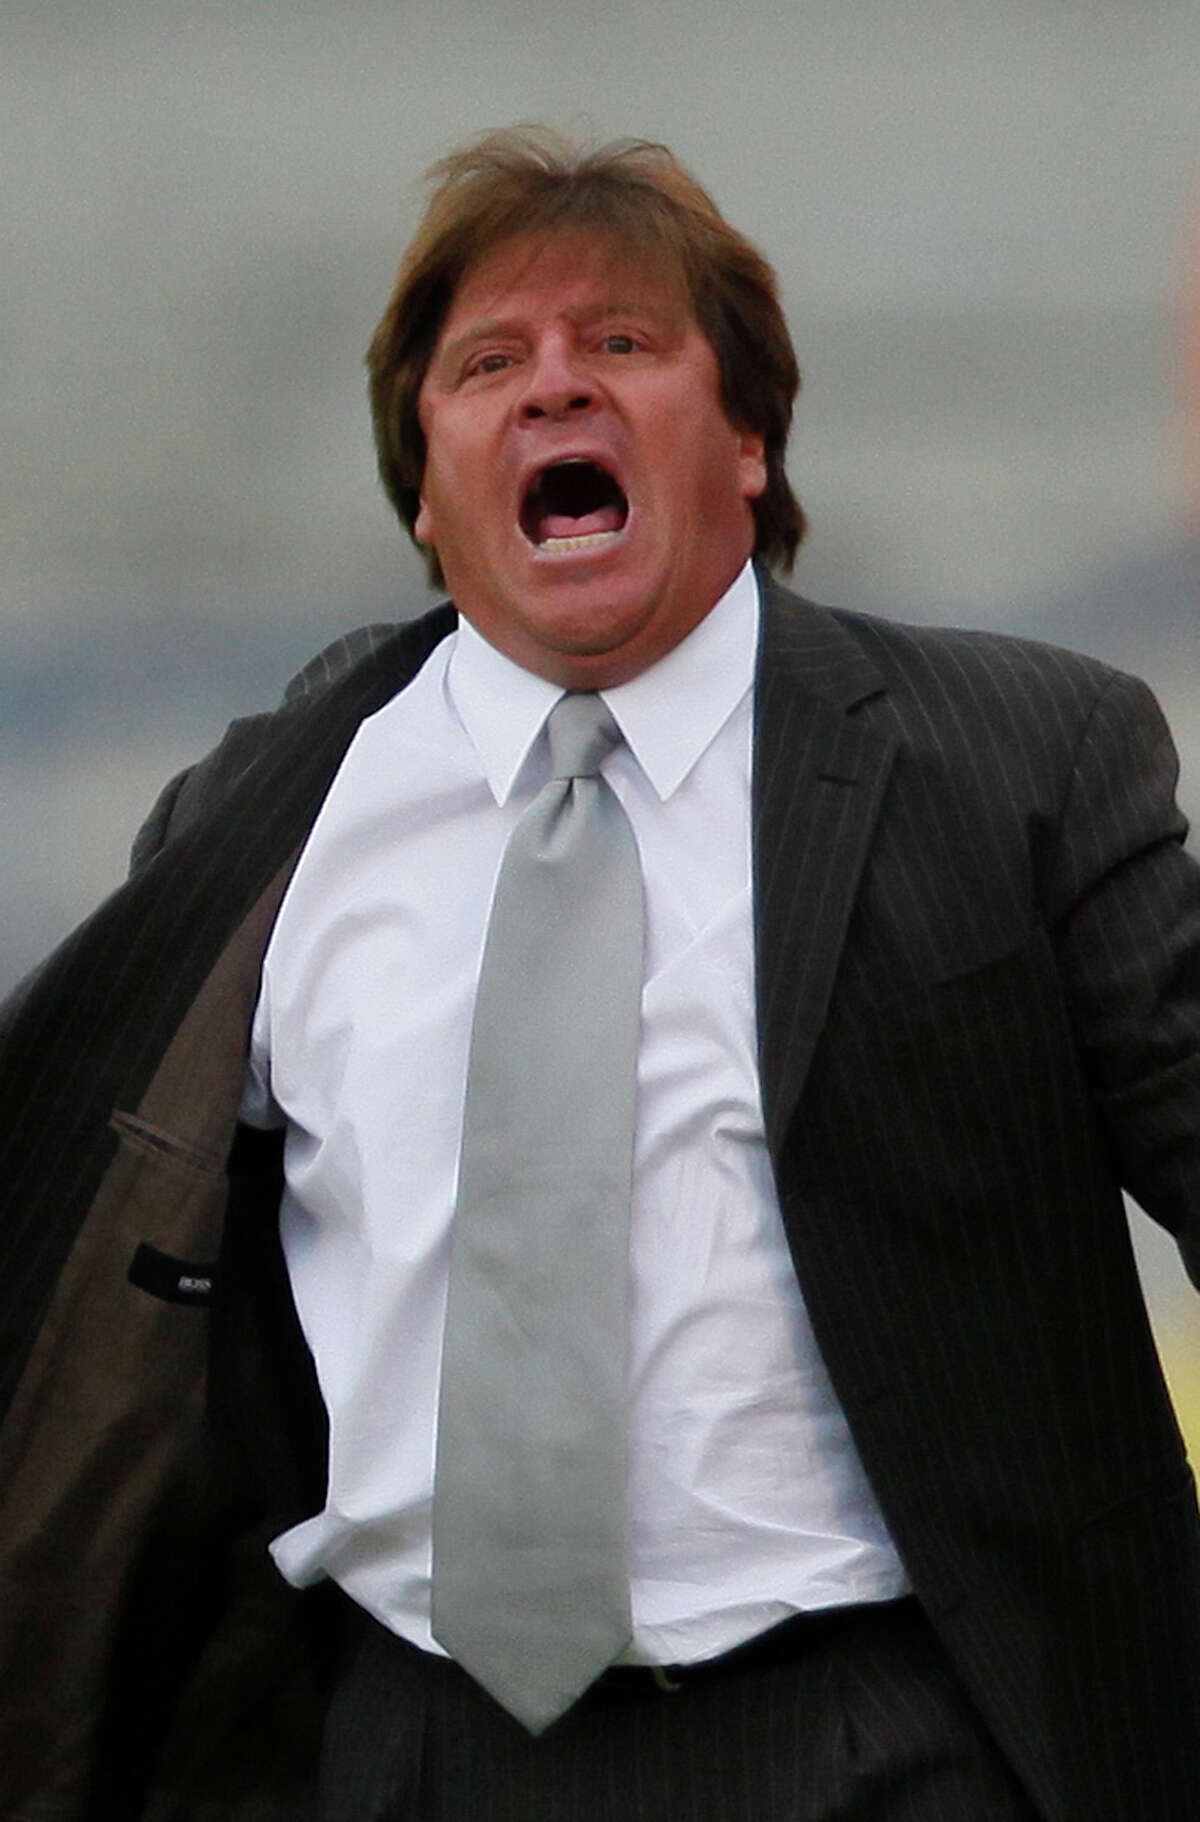 FILE - In this May 16, 2009 file photo, Tecos' soccer coach Miguel Herrera yells from the sidelines of a Mexican soccer league match against Pumas in Mexico City. Mexico's national soccer team named Herrera as its new coach on Friday, Oct. 18, 2013. (AP Photo/Claudio Cruz, File)